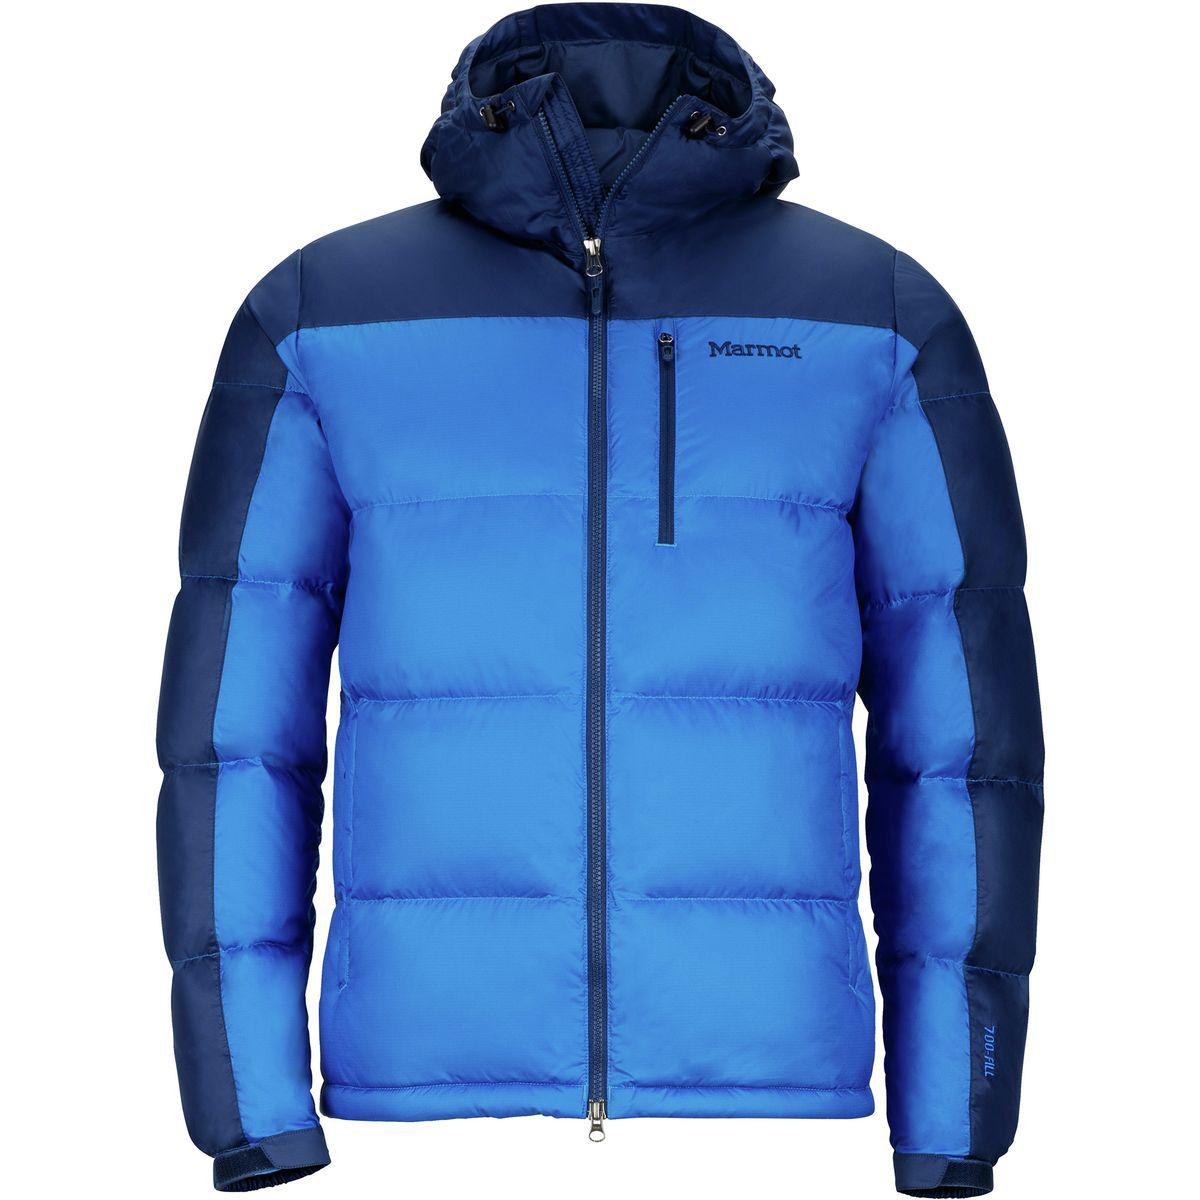 4917dd4b970 Marmot Guides Hooded Down Jacket in Blue for Men - Lyst